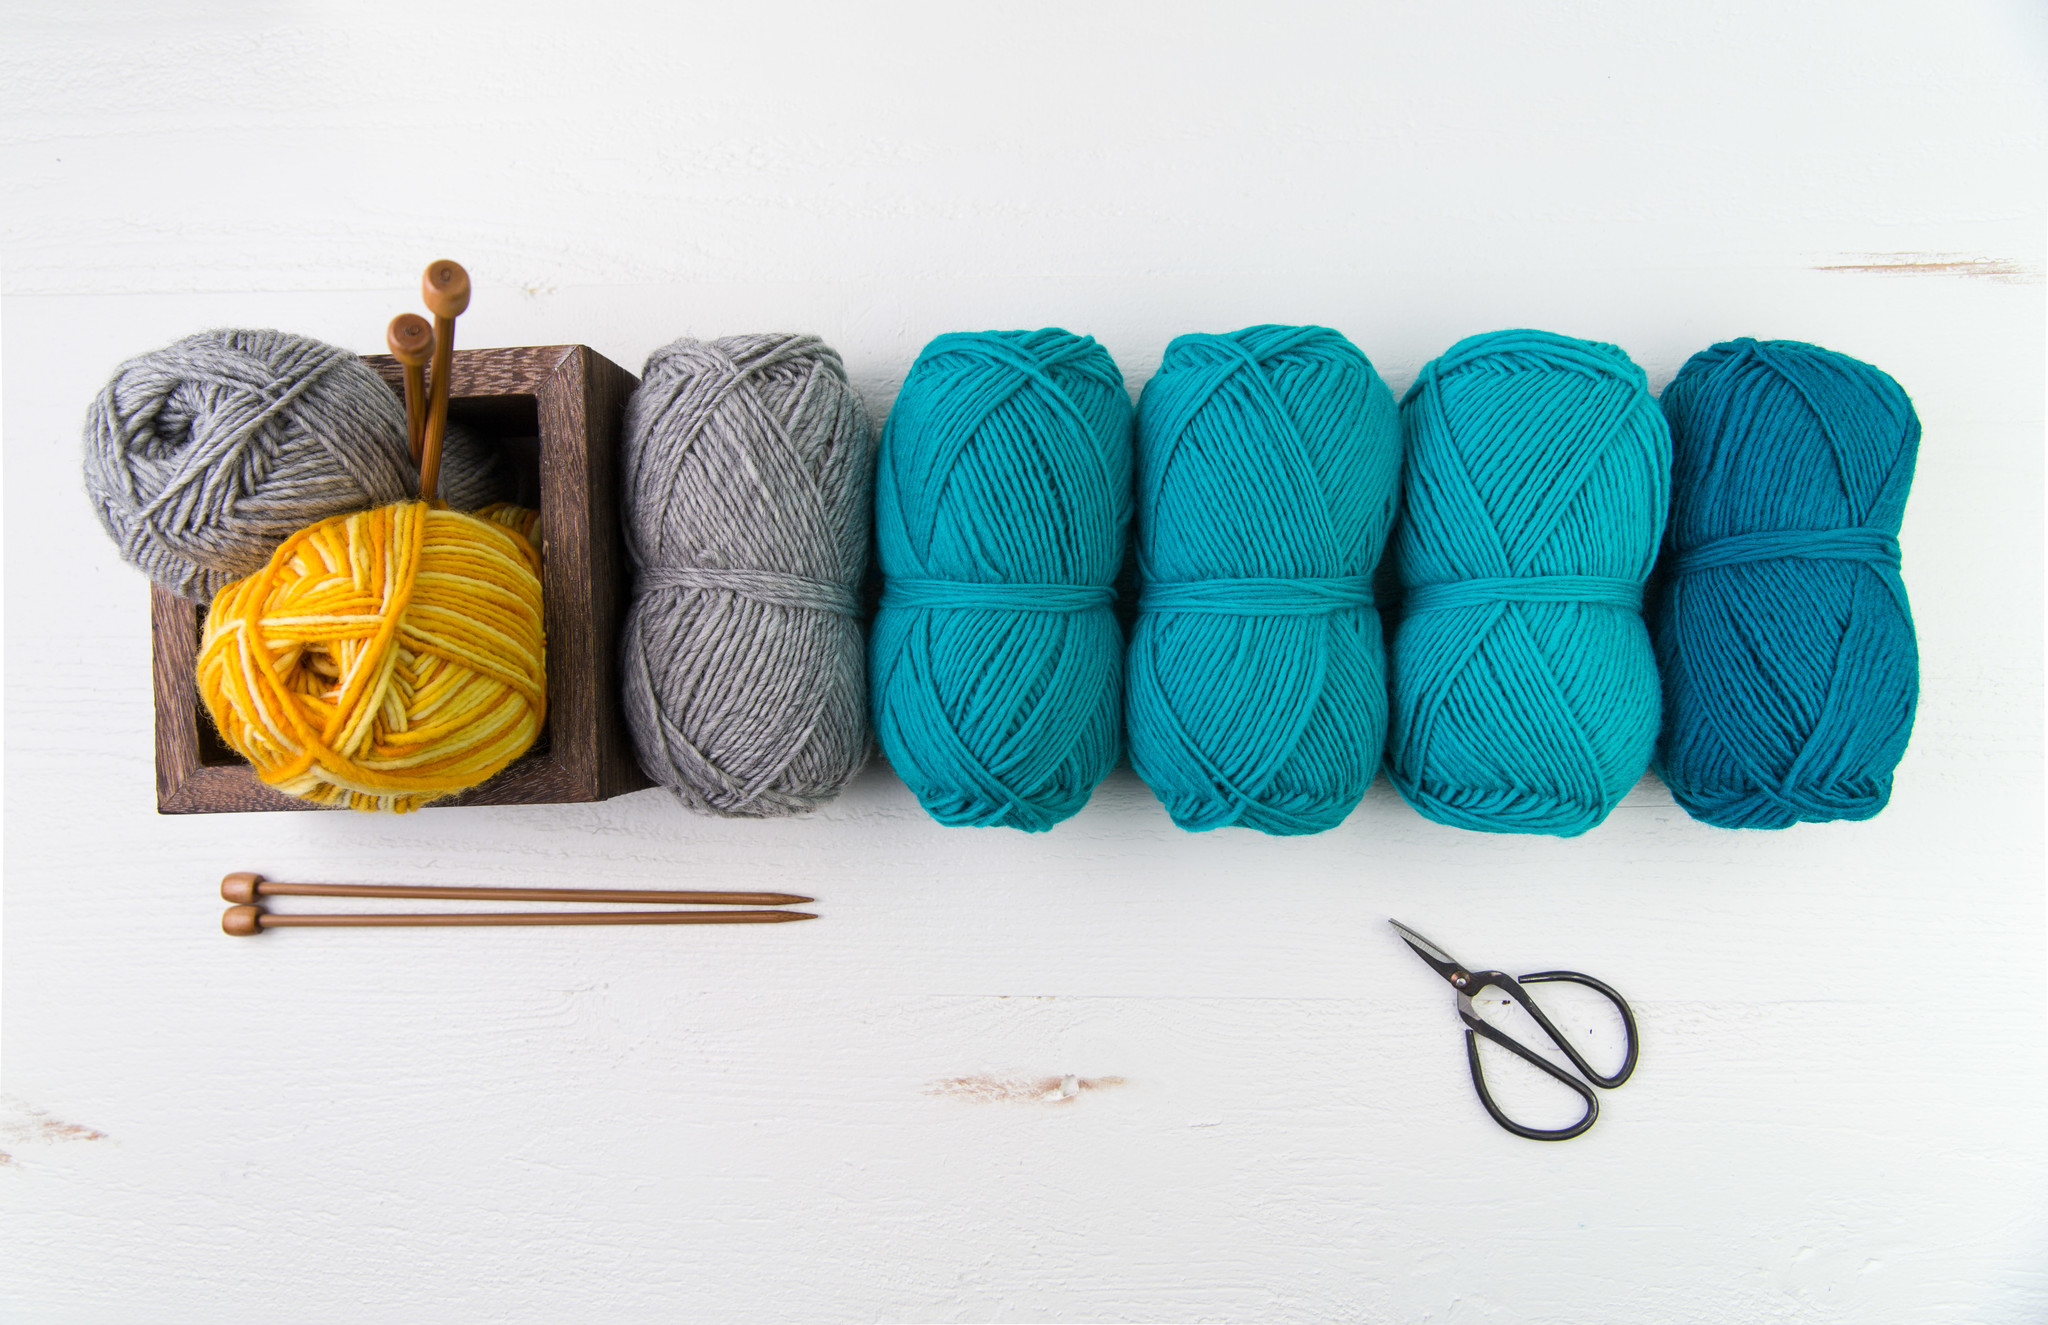 blue and yellow balls of yarn in a row with knitting needles and scissors